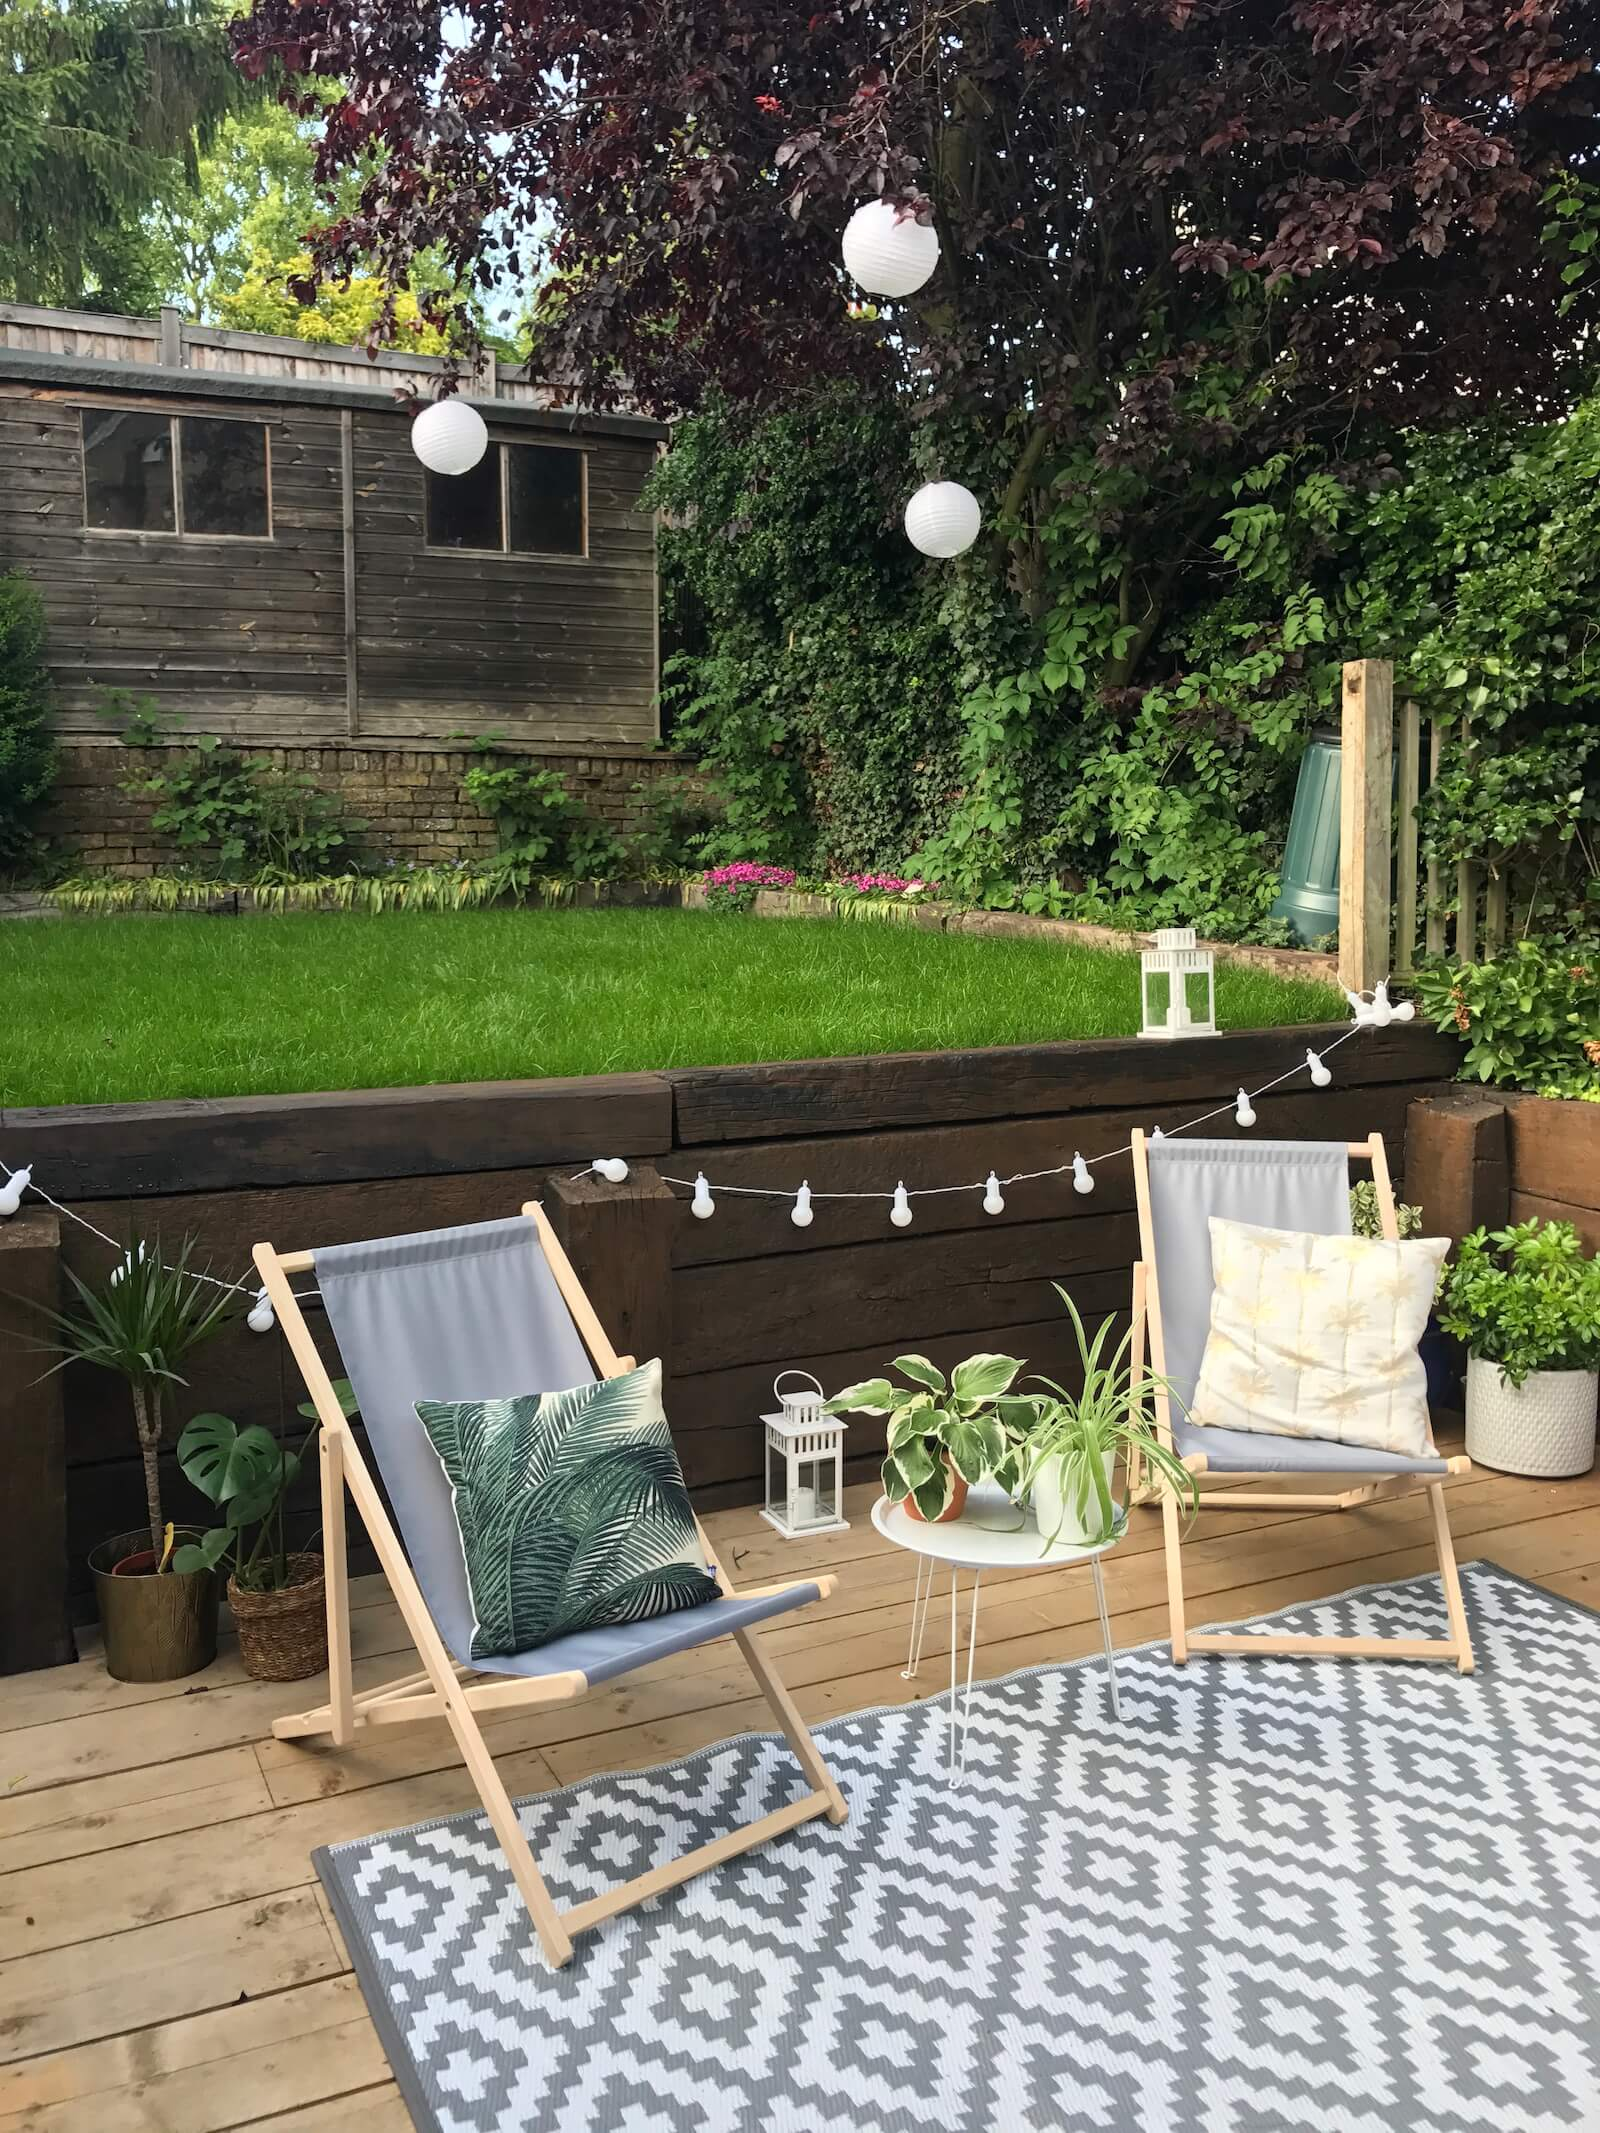 Love this Scandinavian garden? It's a Victorian Terrace in the UK - come and see the whole home tour on www.lovetohome.co.uk